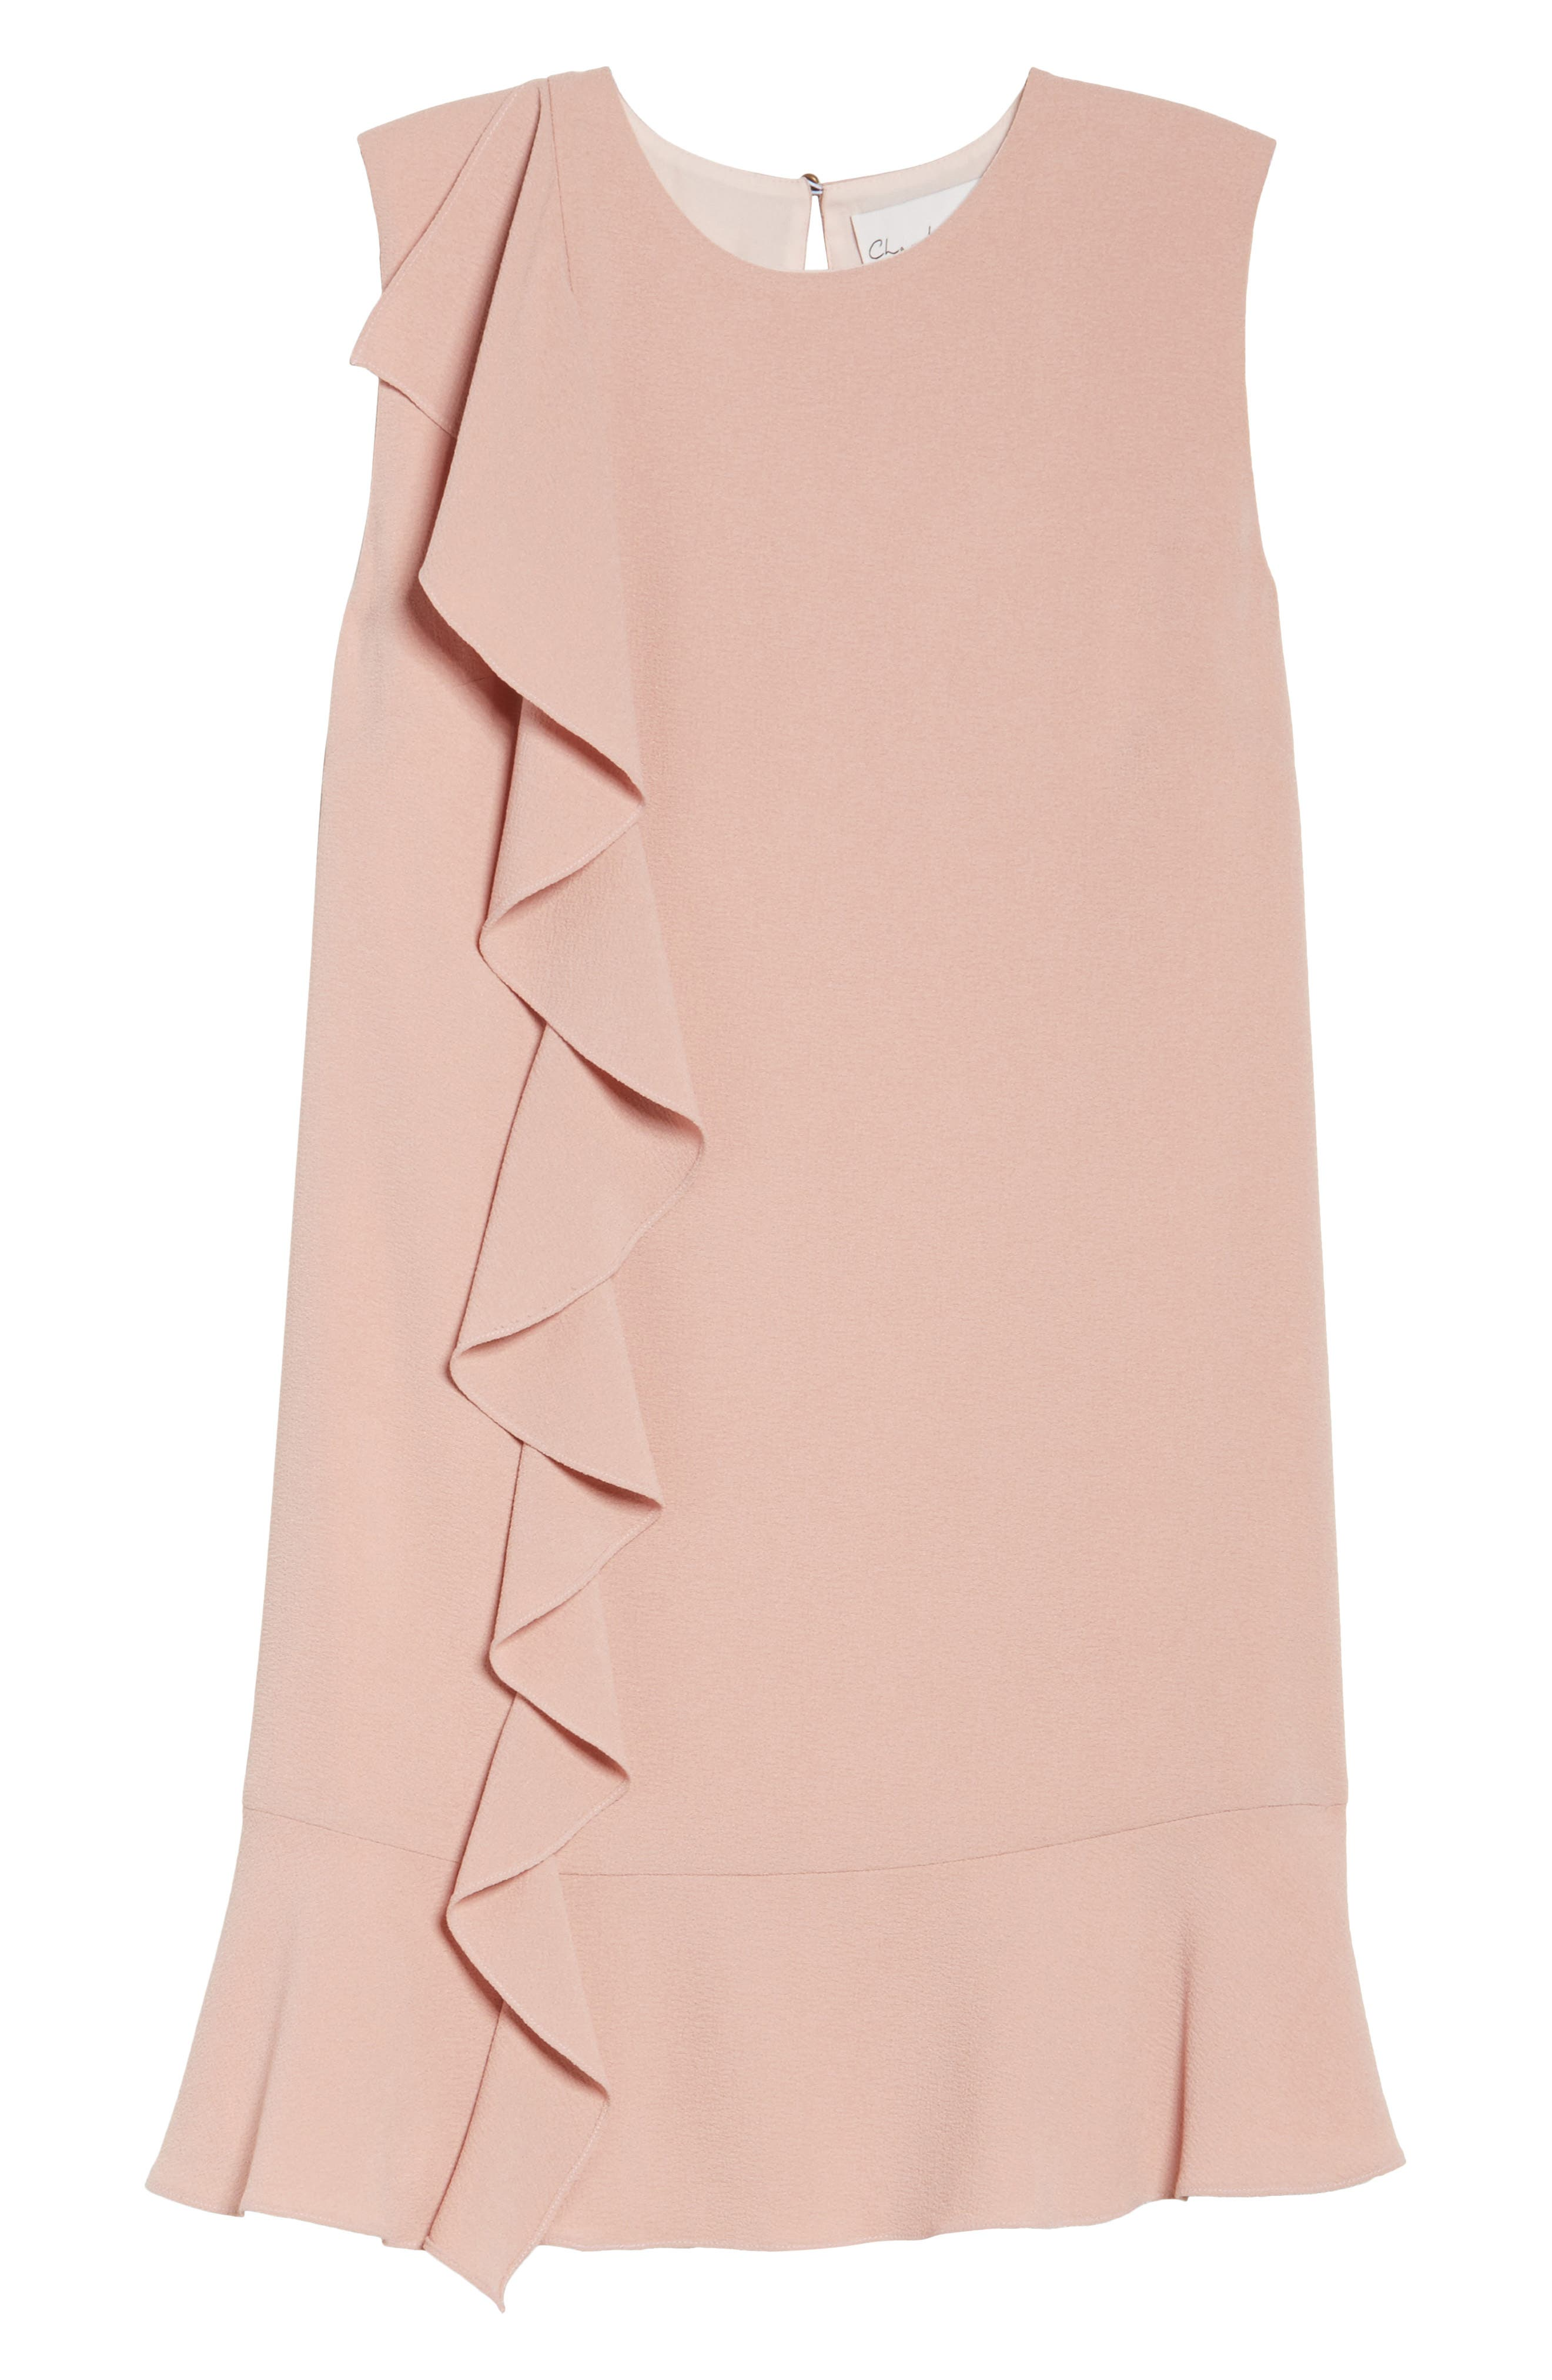 Ruffle Shift Dress,                             Alternate thumbnail 6, color,                             Blush